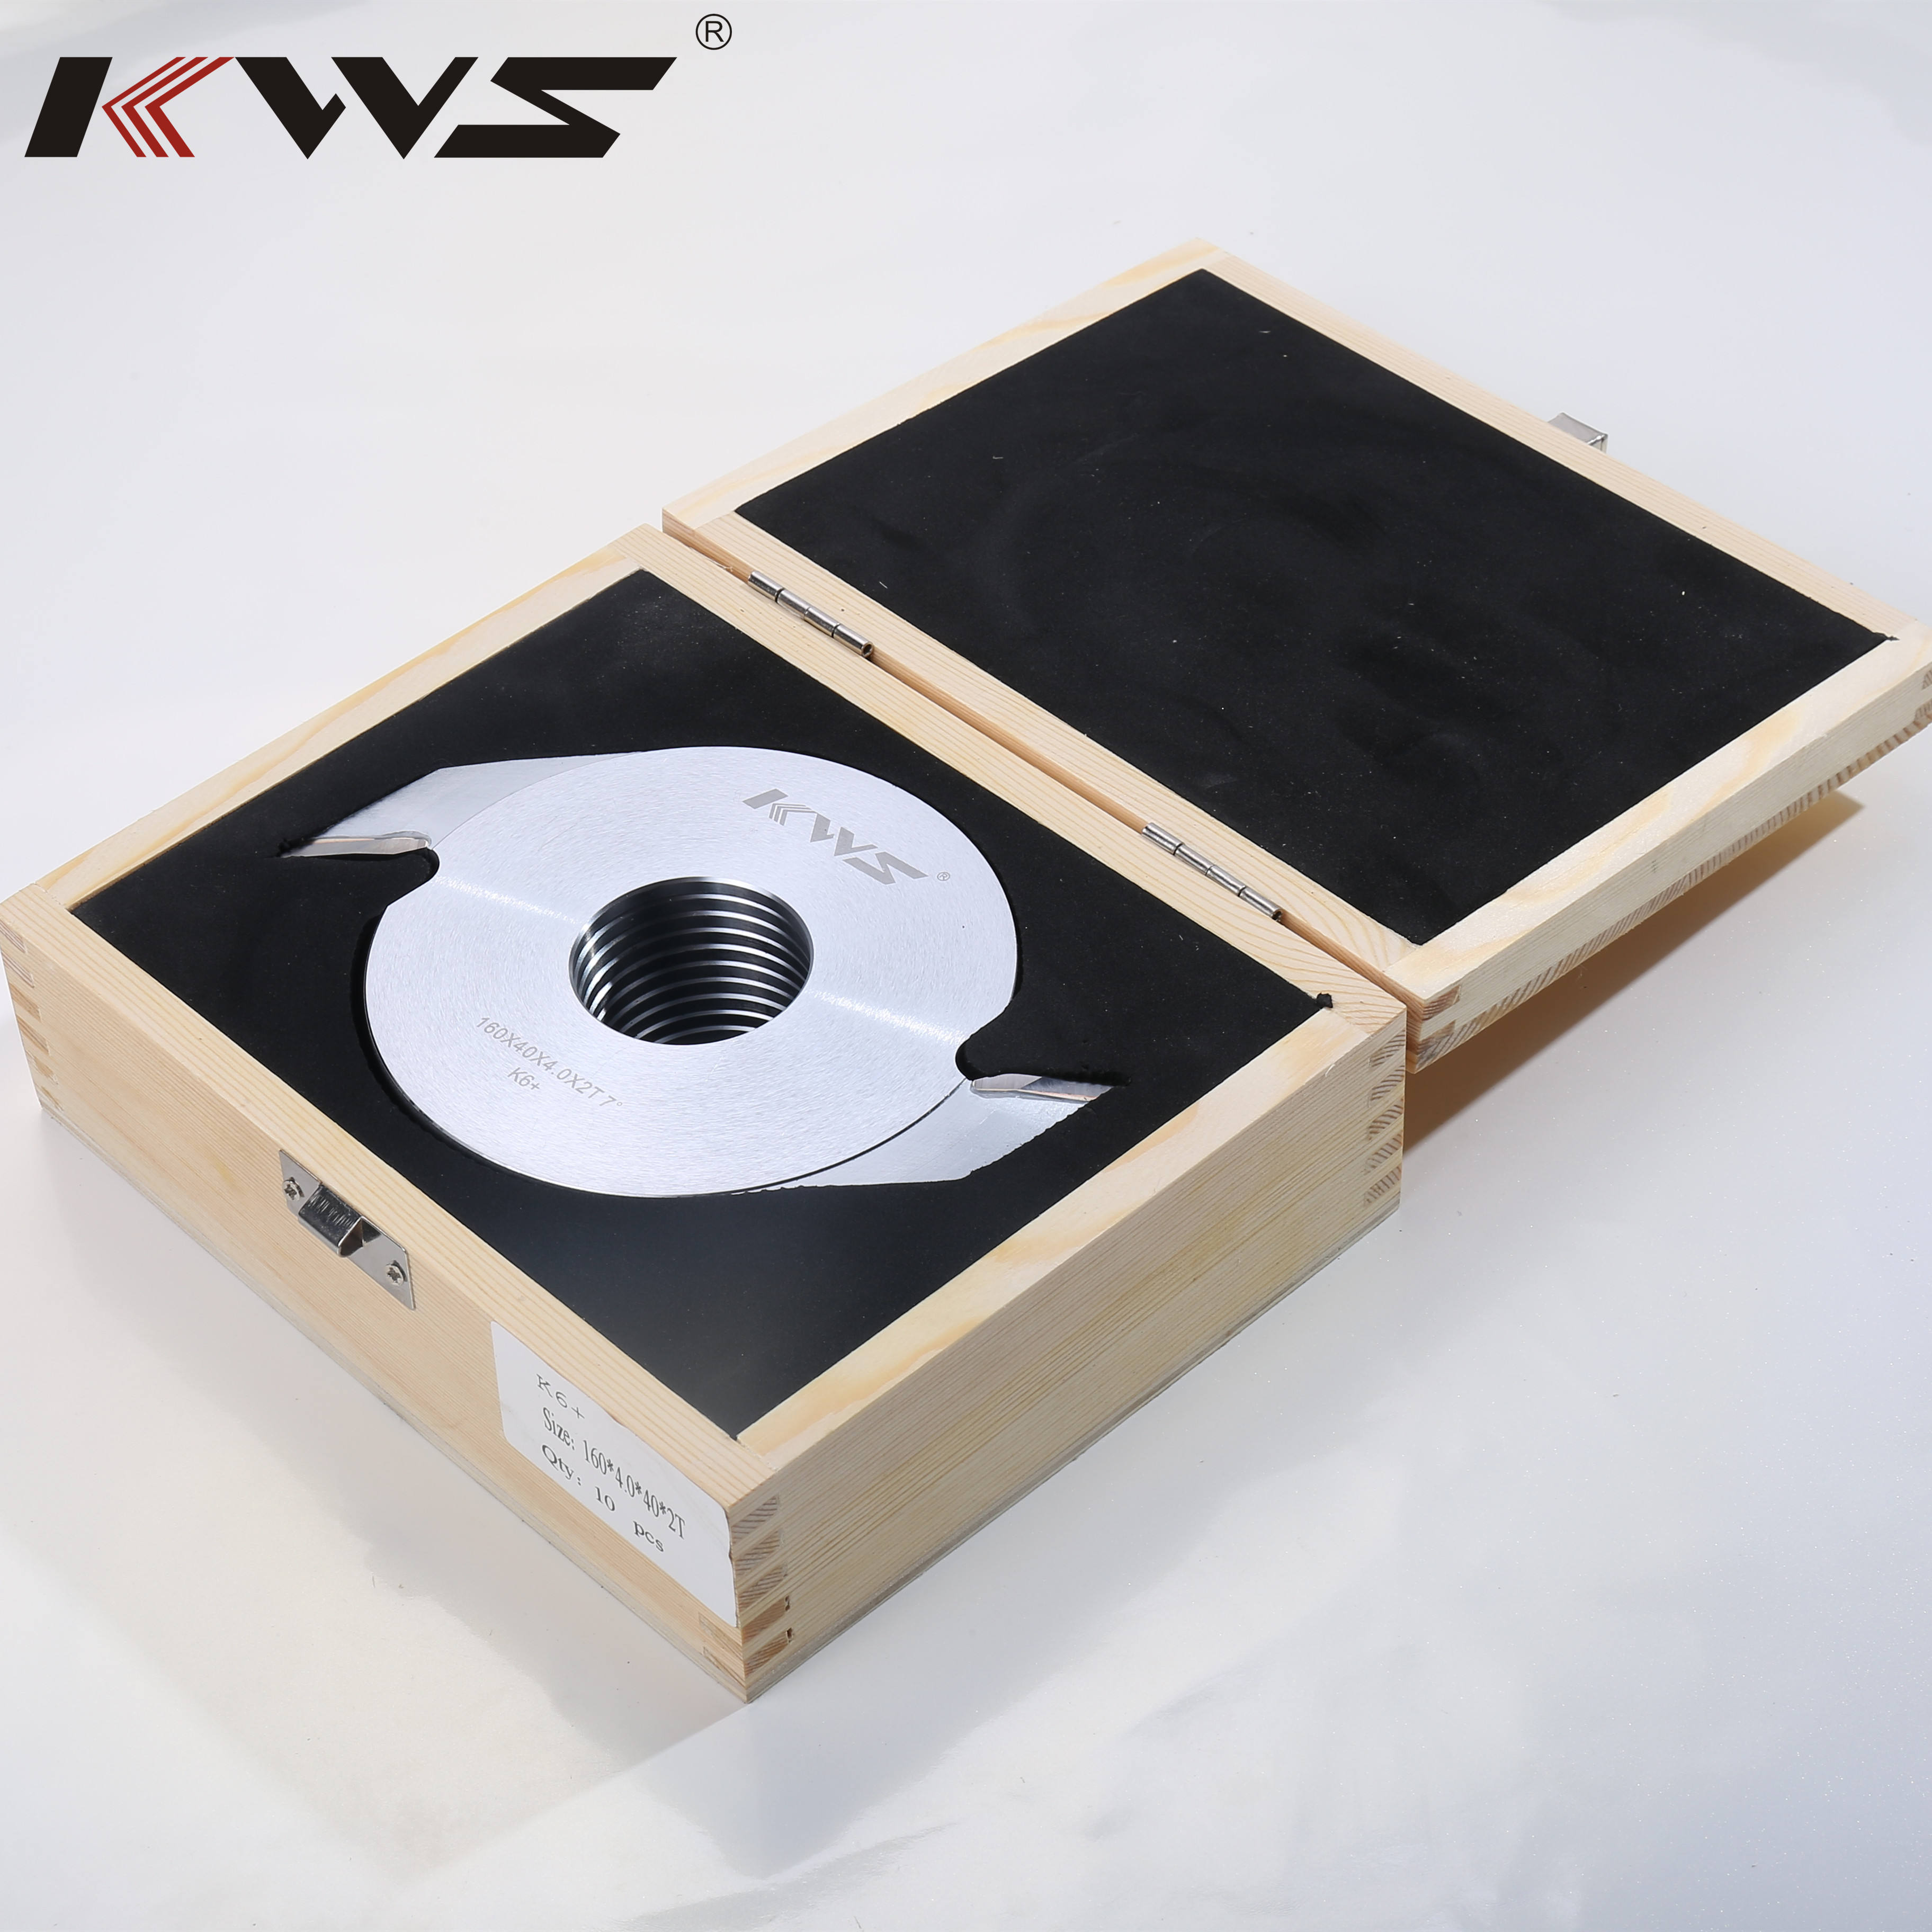 KWS 160MM 12MM Deep Finger Joint Cutter For Joint Solid Wood Saw Blade For Wood